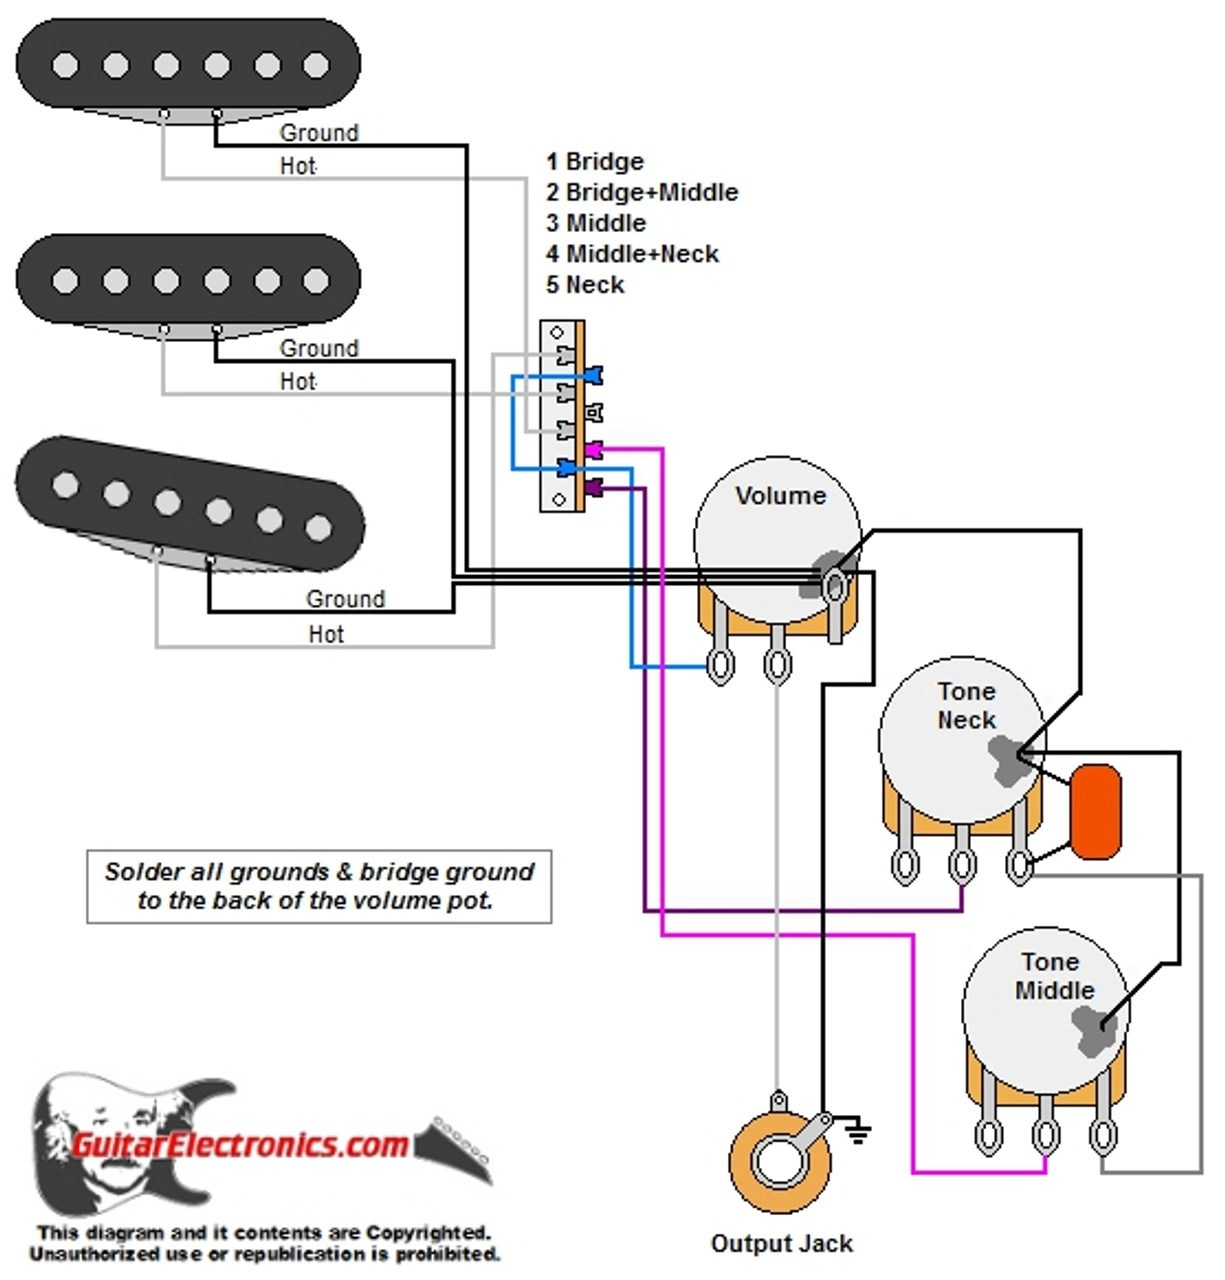 hight resolution of rogue guitar wiring diagram wiring diagram forward rogue guitar output jack wiring